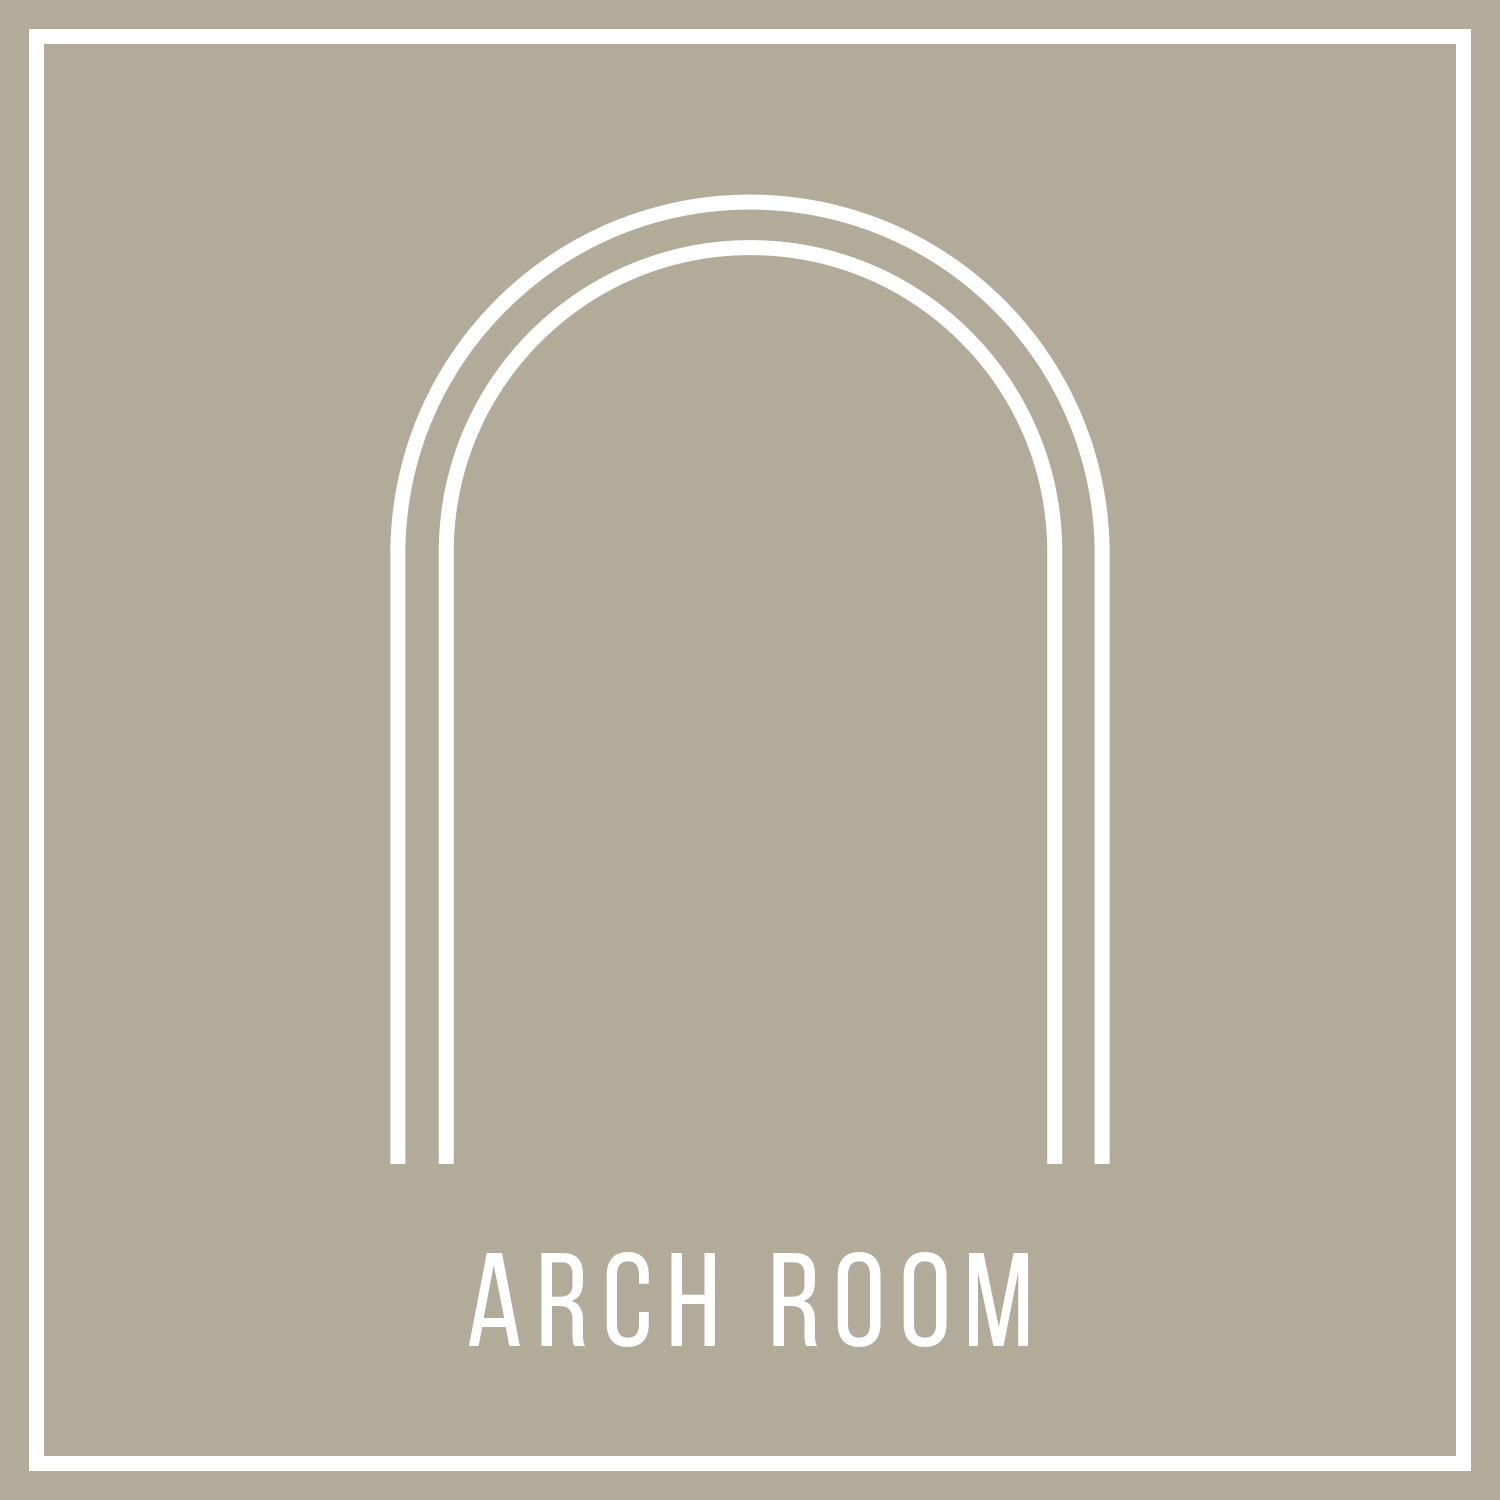 aya-kapadokya-room-features-old-kitchen-suite-square-arch-room